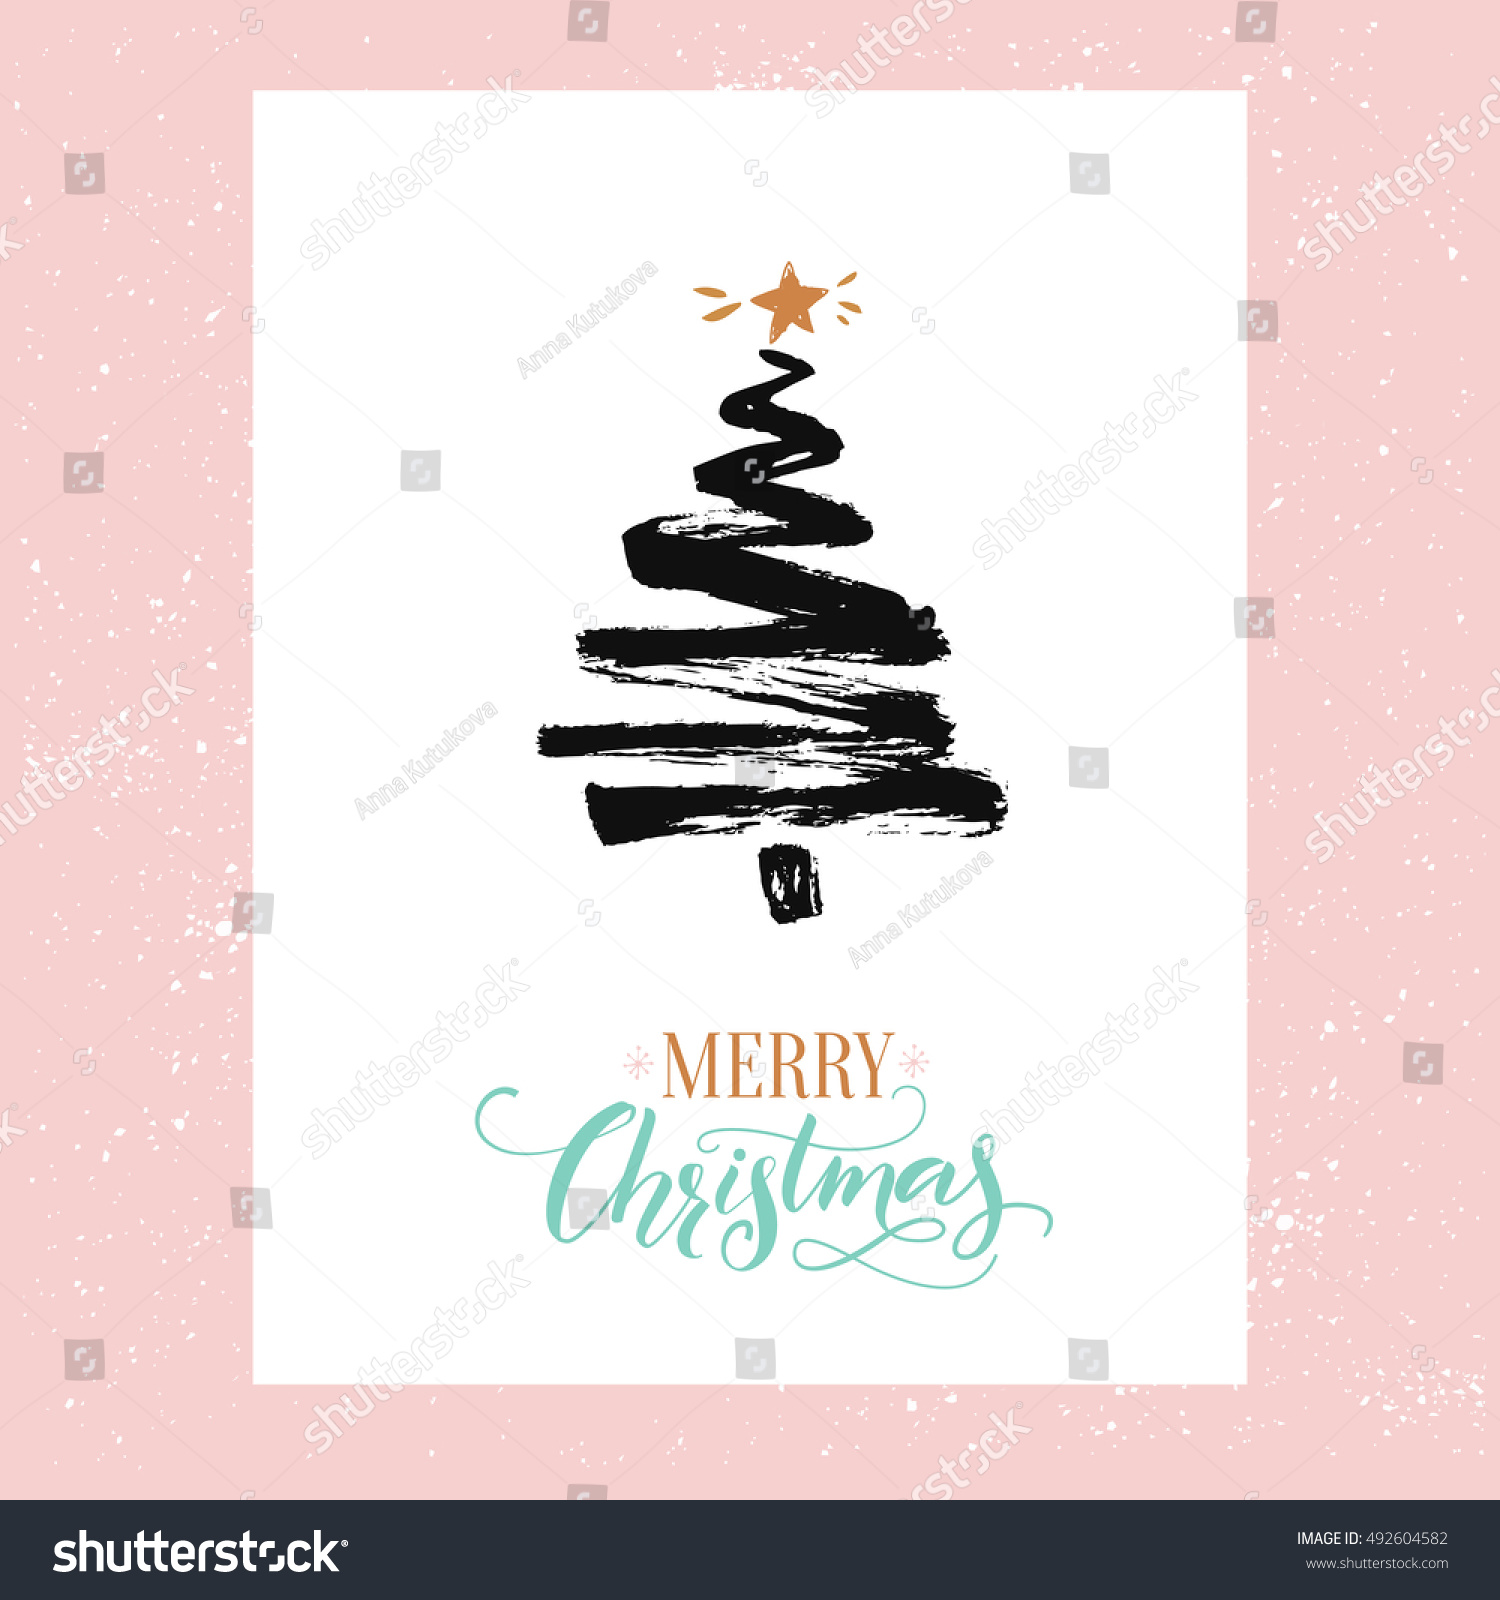 merry christmas card minimalism design simple stock vector royalty